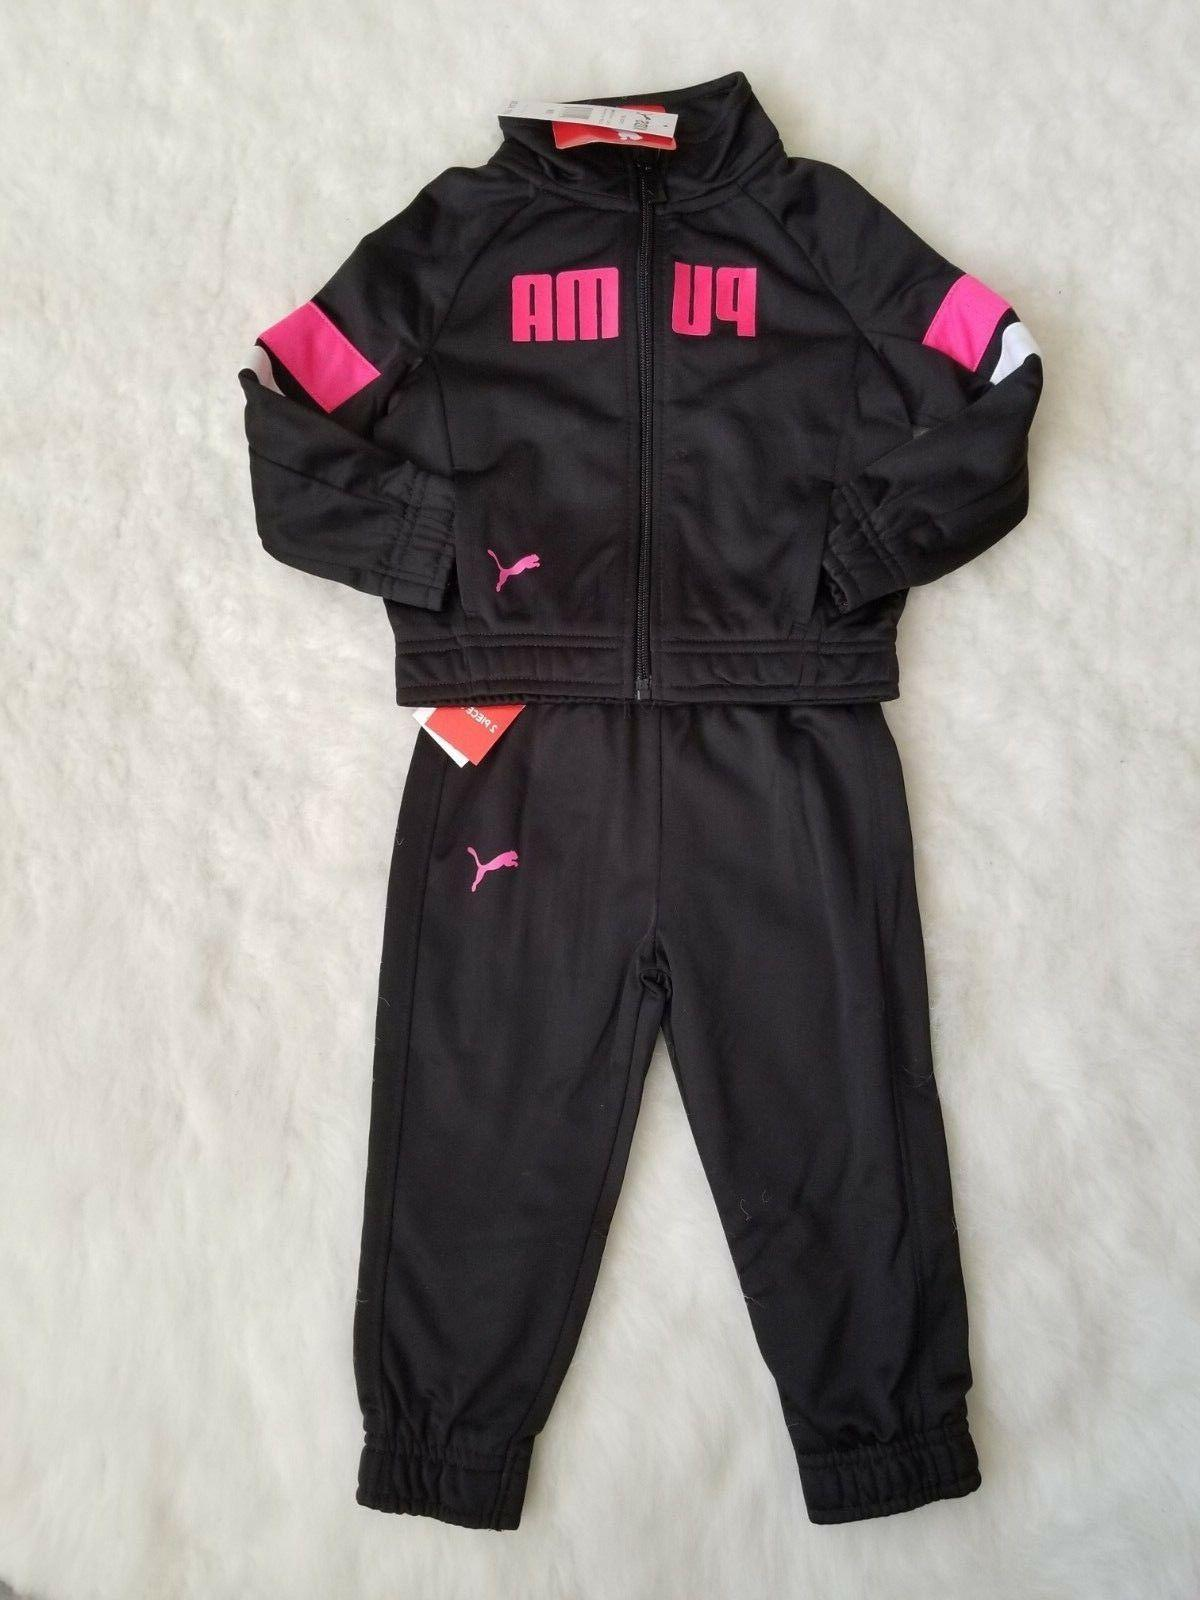 NWT PUMA Baby 2 Tracksuit Set SIZE & COLOR